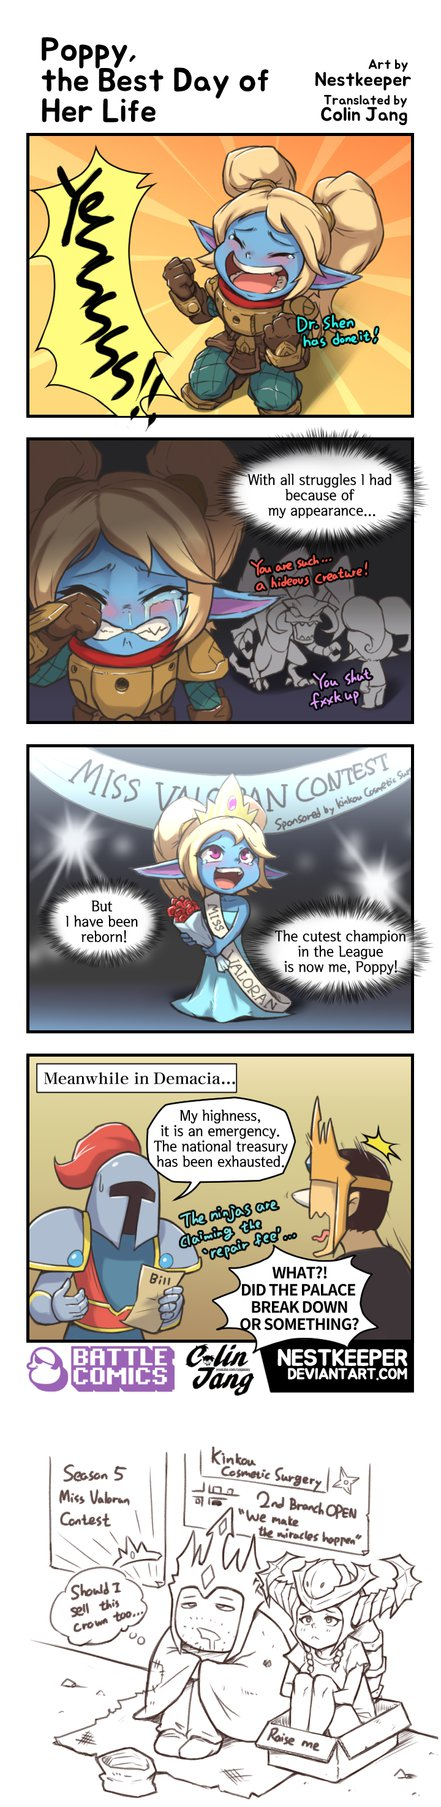 19goldlol Poppy The Best Day Of Her Life By Nestkeeper Lol League Of Legends League Of Legends Comic Poppy League